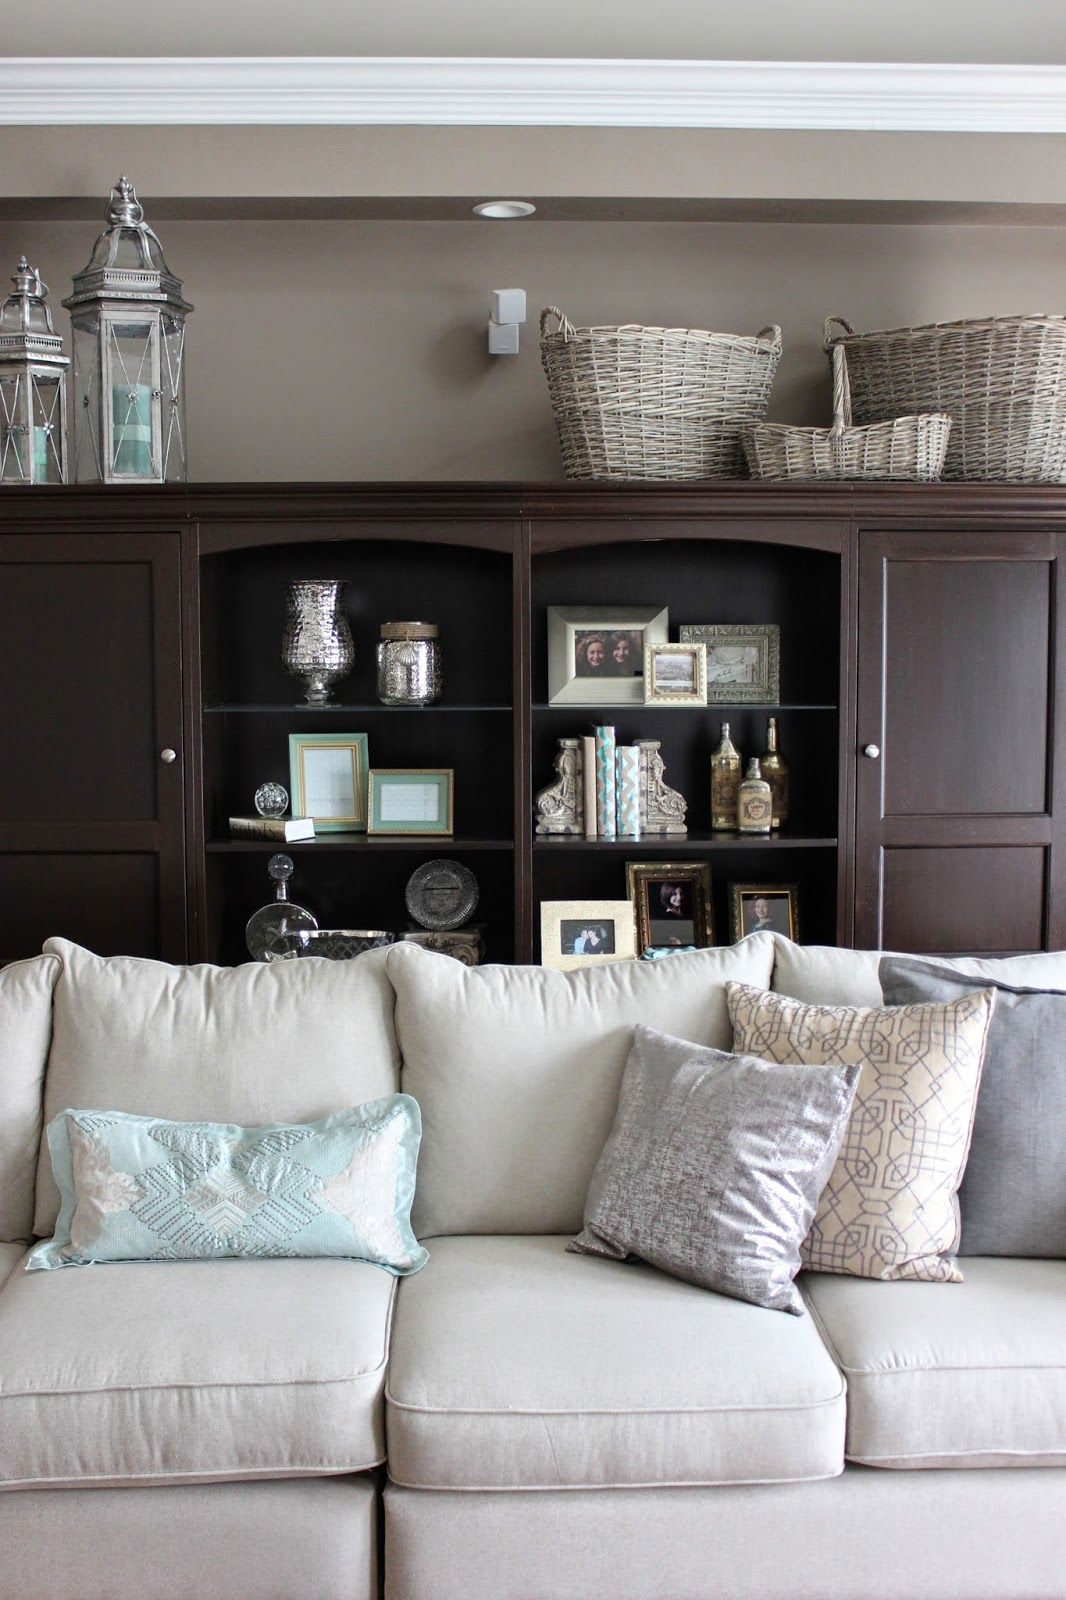 Maison Decor Shabby Chic Style With Dark Furniture